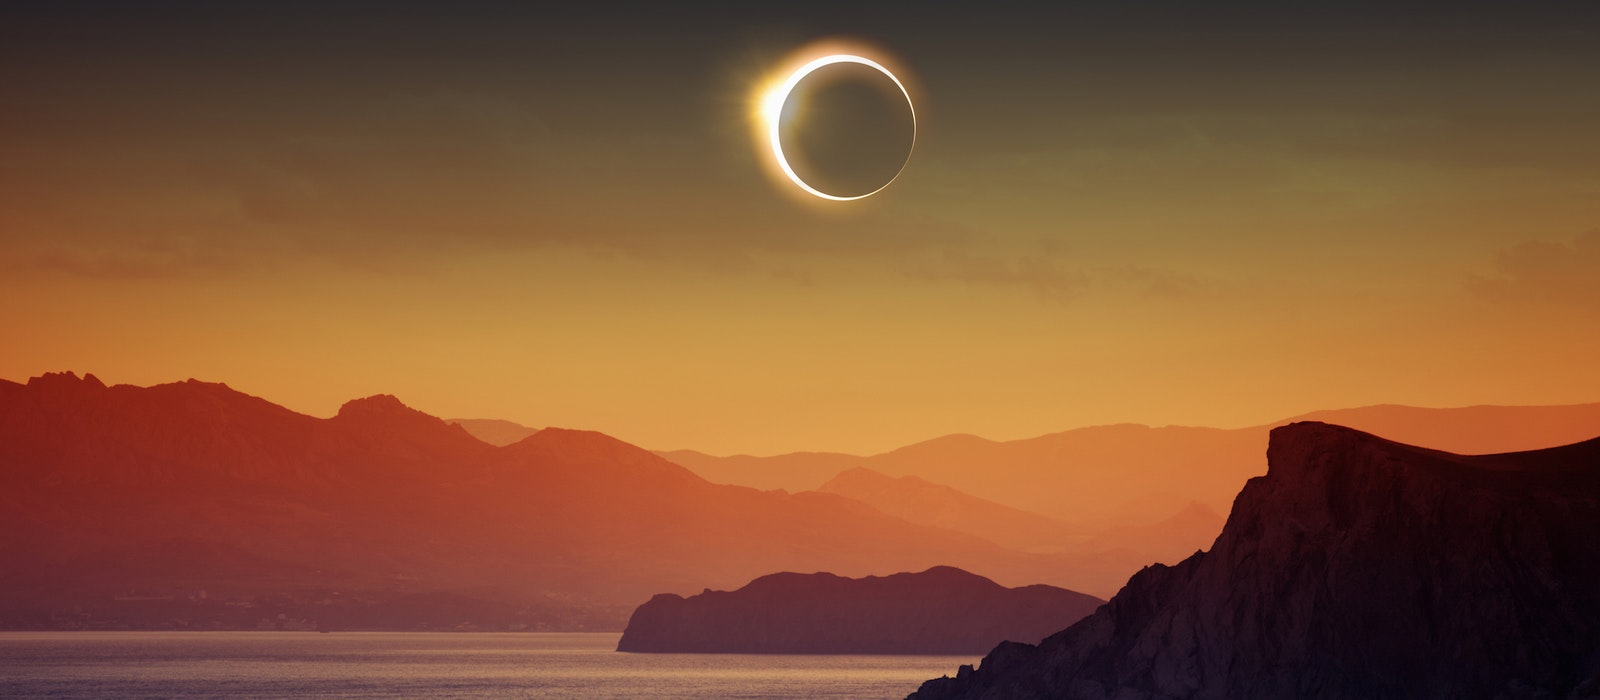 The 2019 total solar eclipse will cross over Chile and Argentina and draw viewers from around the world.